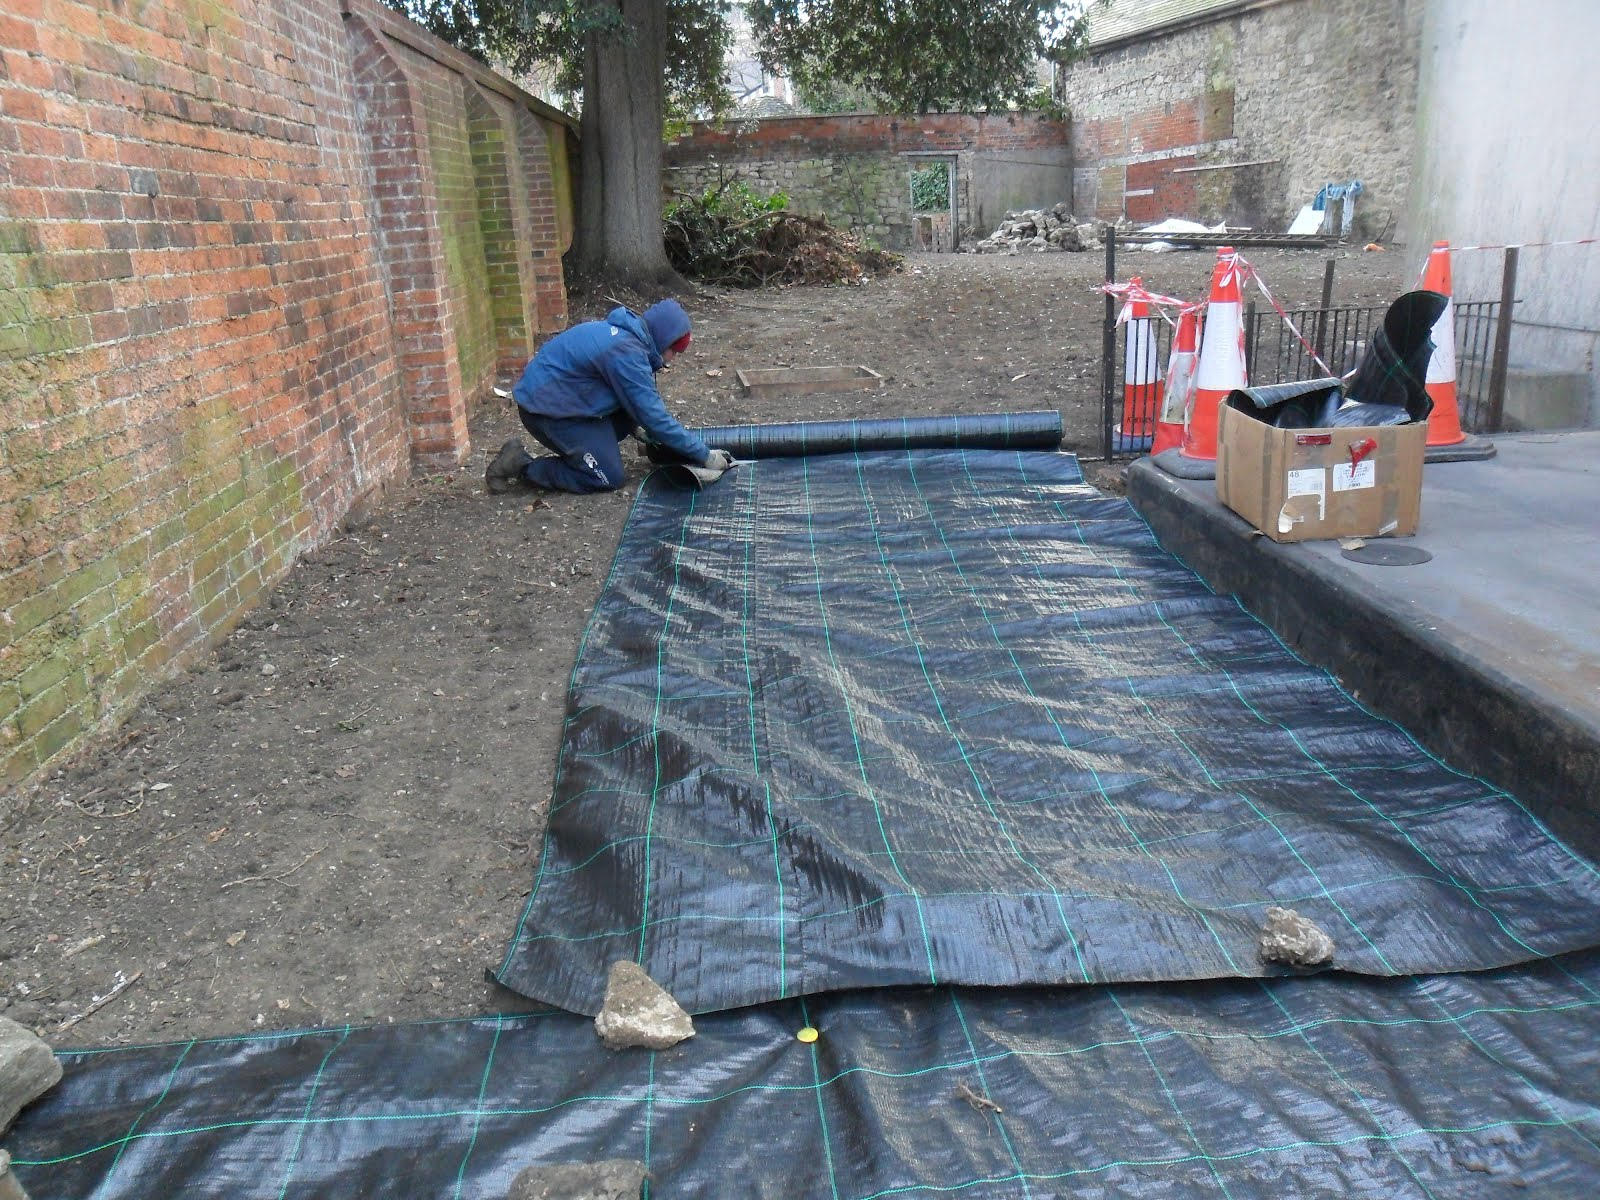 worcester college gardeners carpet laying. Black Bedroom Furniture Sets. Home Design Ideas